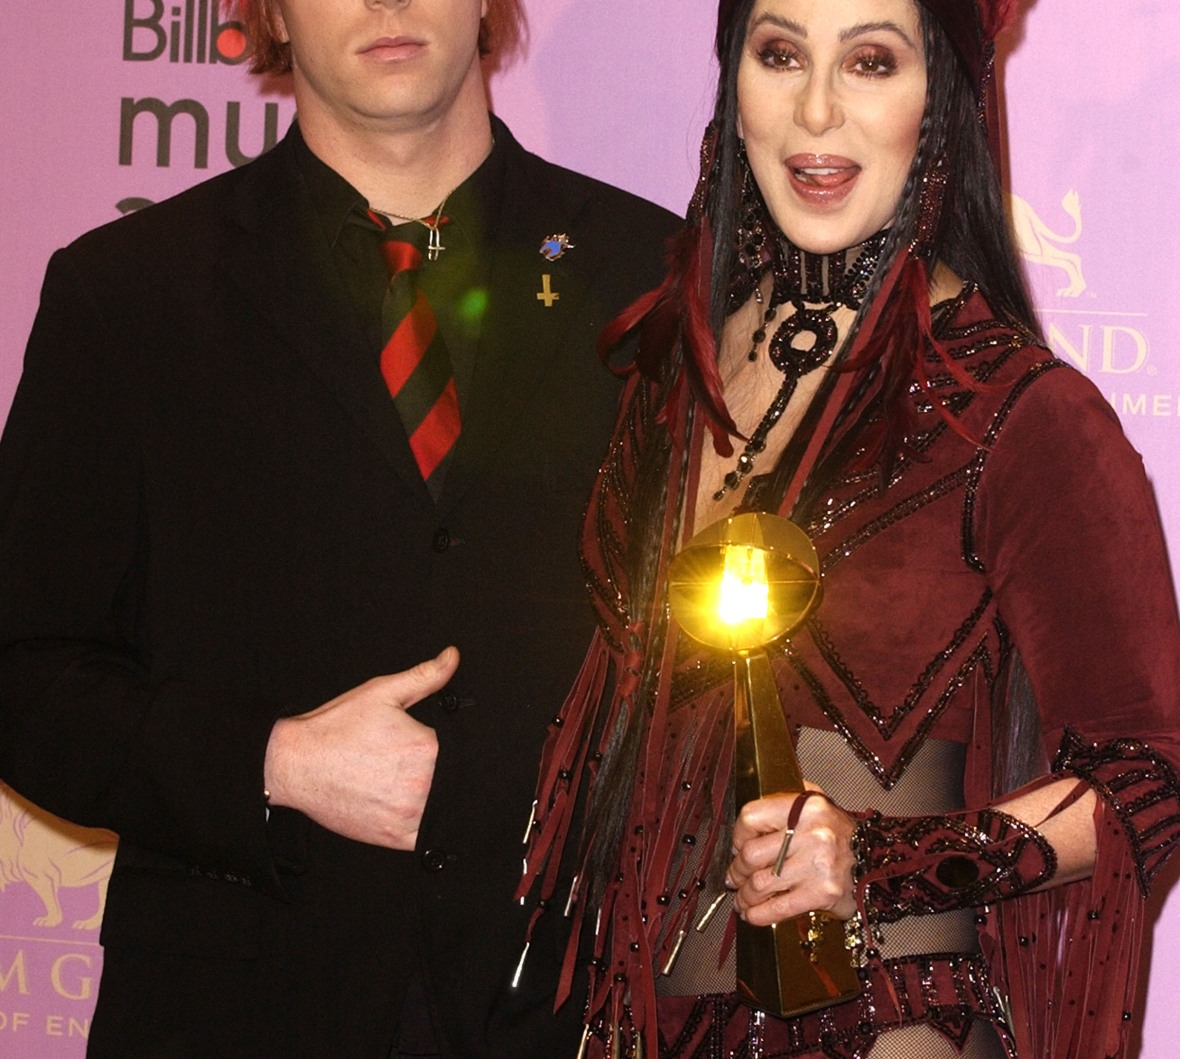 cher and her son